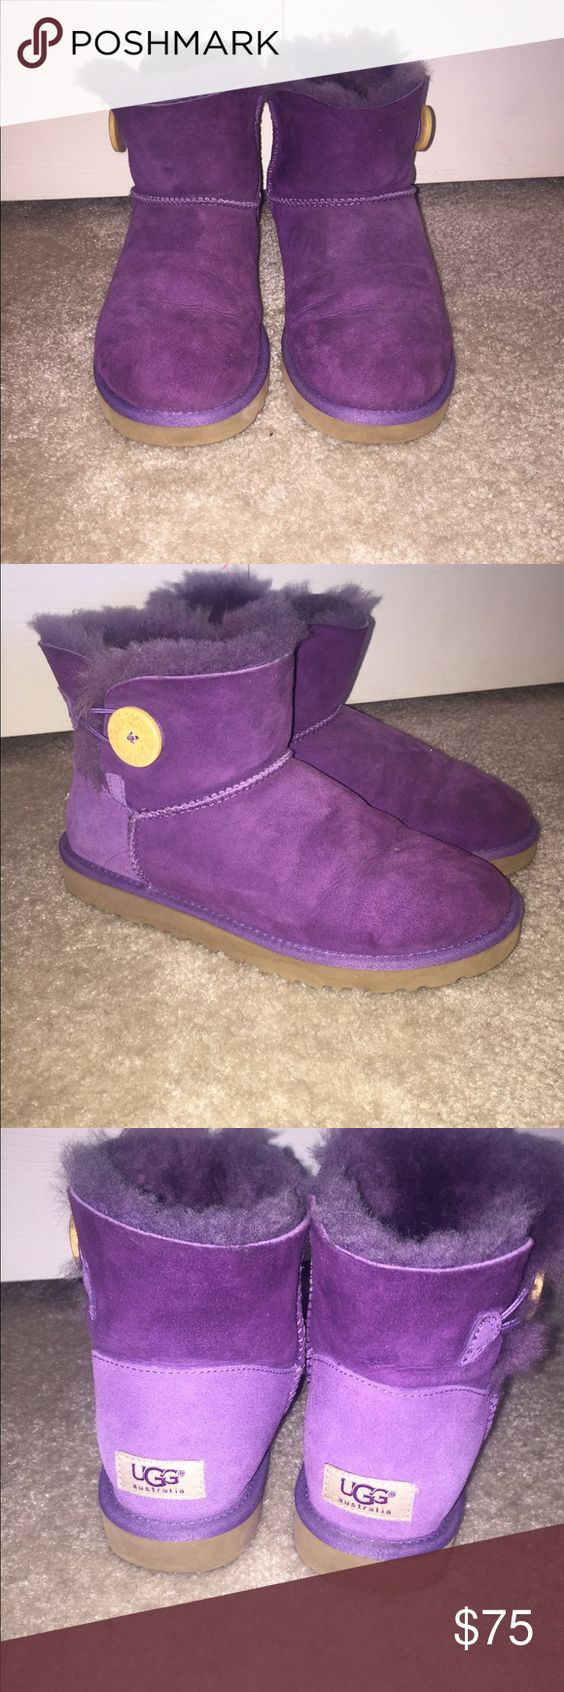 Ankle length UGG booties Purple ankle length authentic UGG booties. NEVER WORN BEFORE NWOT!!! The fur on the inside is not matted down yet and everything is still in tact. In perfect condition!! UGG Shoes Ankle Boots & Booties